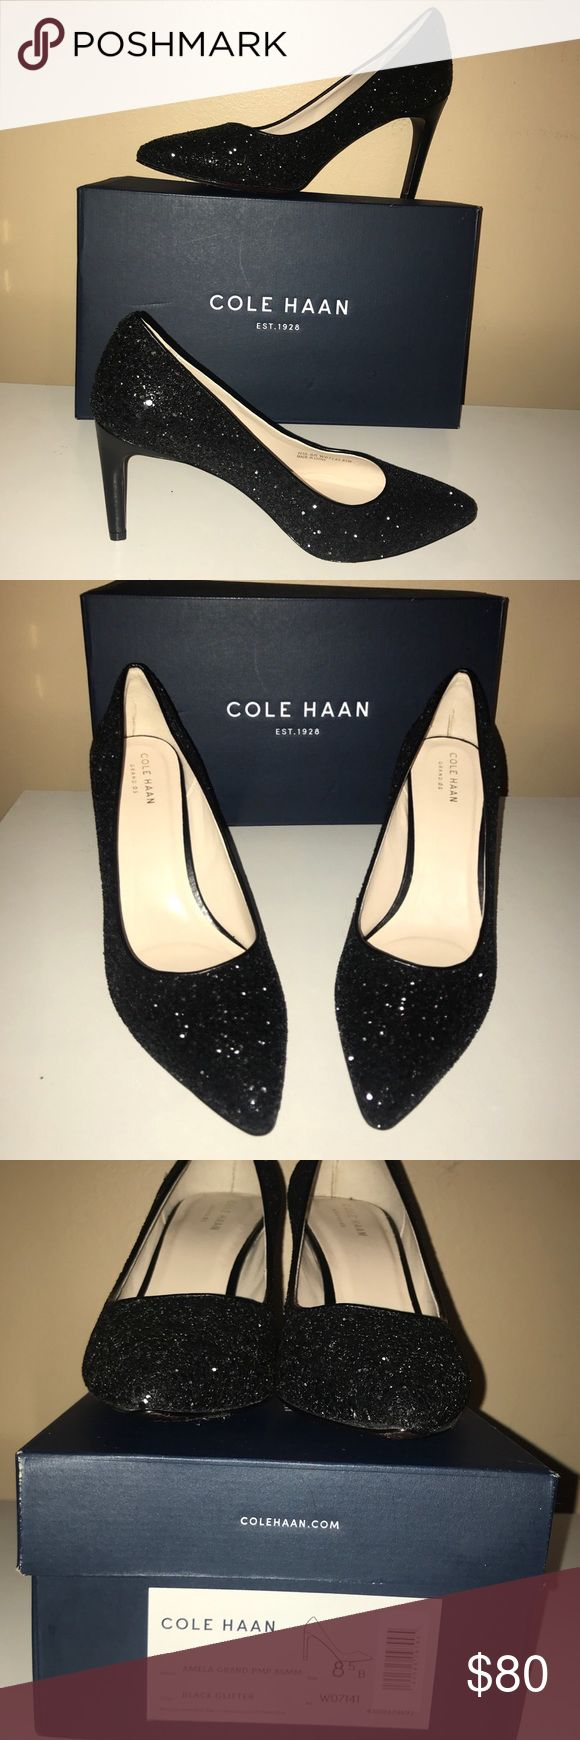 """🆕WORN 1x💙COLE HAAN💙Shimmery Black Glitter Heels 🆕WORN ONCE💙COLE HAAN💙""""Amelia Grand"""" Shimmering Black Glitter pointed Toe Heels. Size-8.5. Feels like an old favorite Thanks to the zero Grand cushioning along with their innovative Grand OS operating system. Engineered for flexibility & designed with lightweight , dual compound cushioning and Achilles padding for comfort and energy return. Leather Sole. Heel height- 3.5"""". Original cost $150. PLEASE NOTE: 1 Heel has a Knick.. See LAST…"""